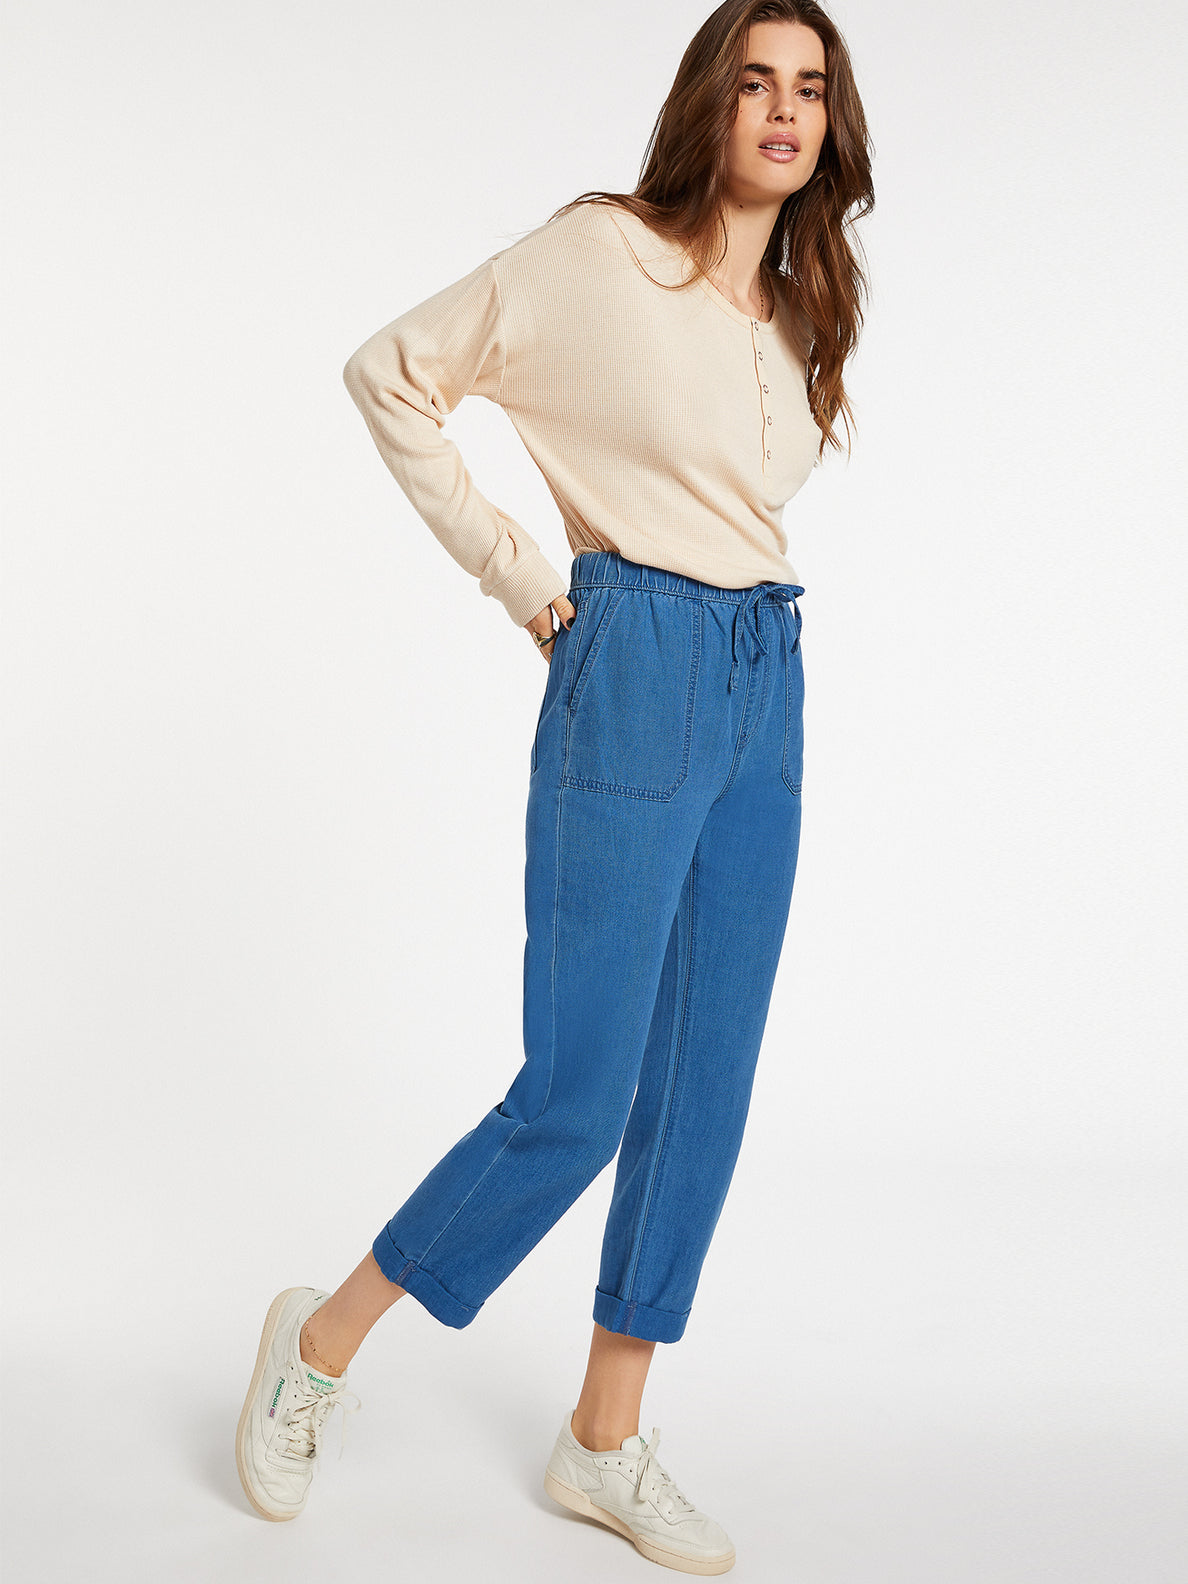 Sunday Strut Pants - Airforce Blue (B1232006_AFB) [4]